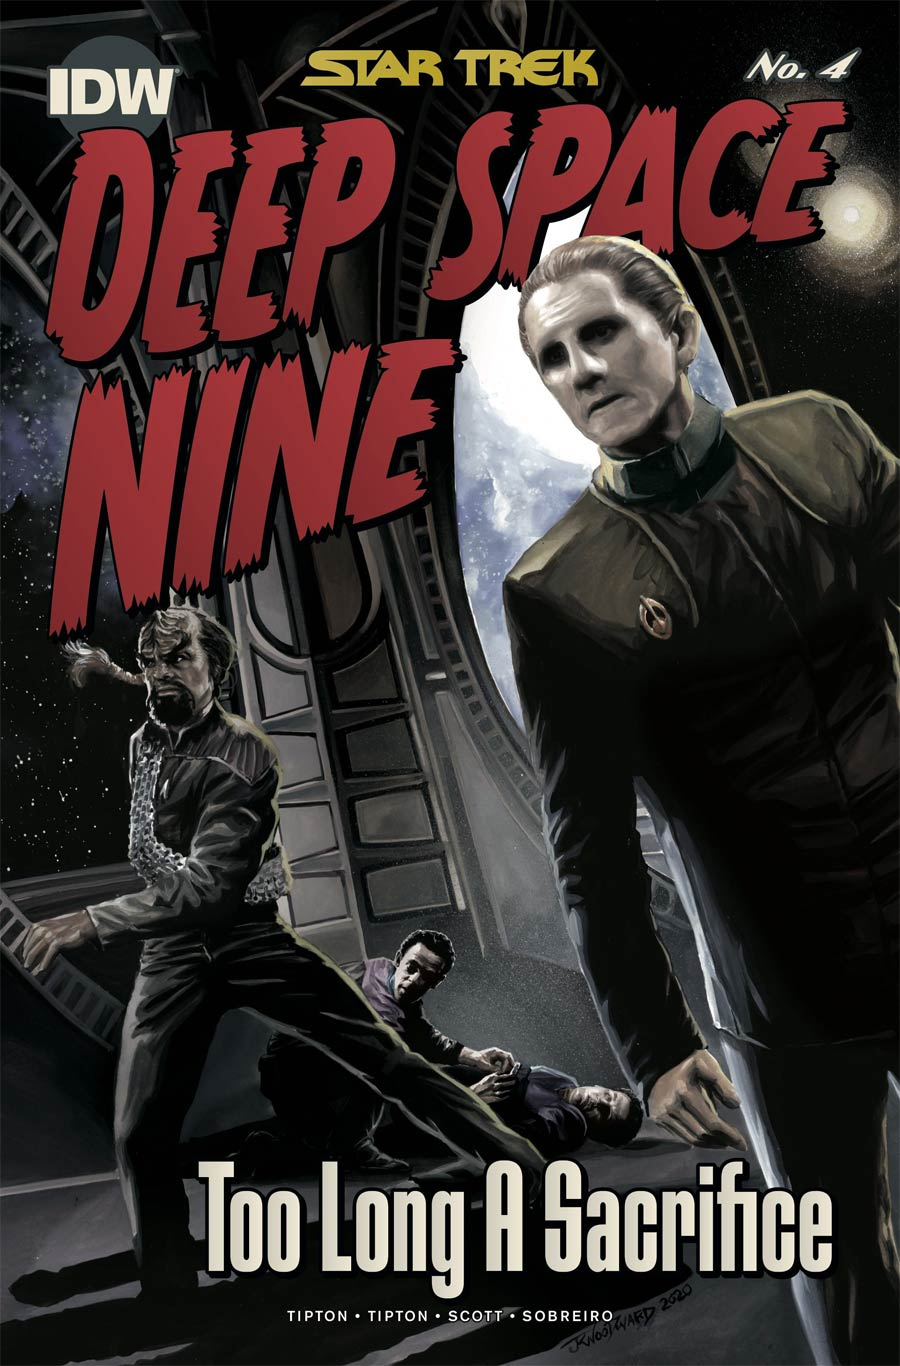 Star Trek Deep Space Nine Too Long A Sacrifice #4 Cover C Incentive JK Woodward Variant Cover